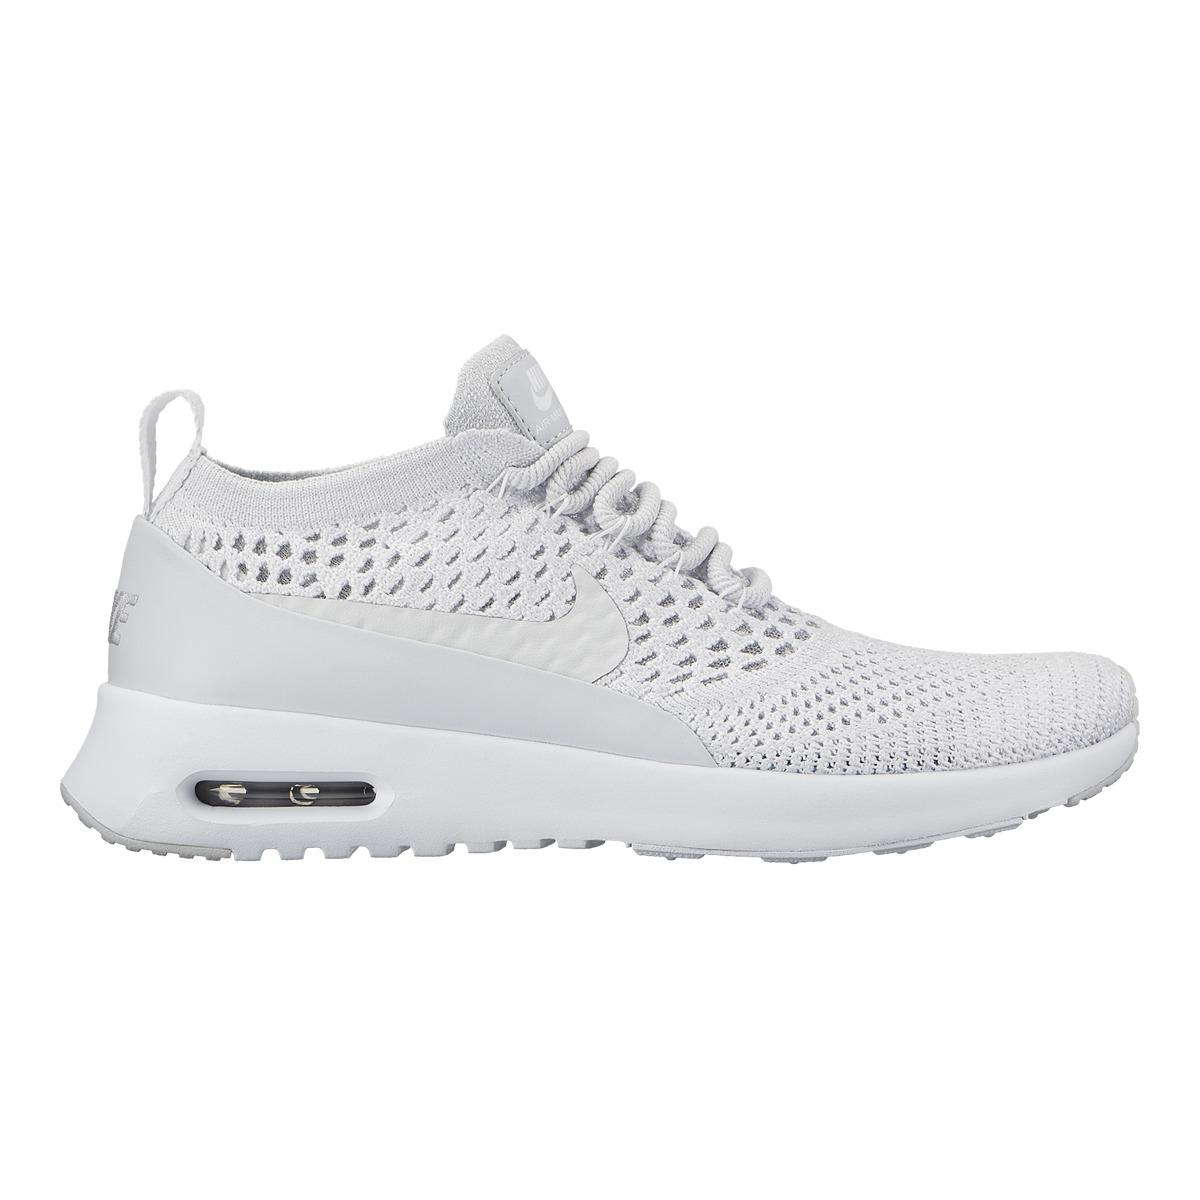 70f67b30a2cc7 Nike Air Max Thea Ultra Flyknit Casual Trainers in White for Men - Lyst